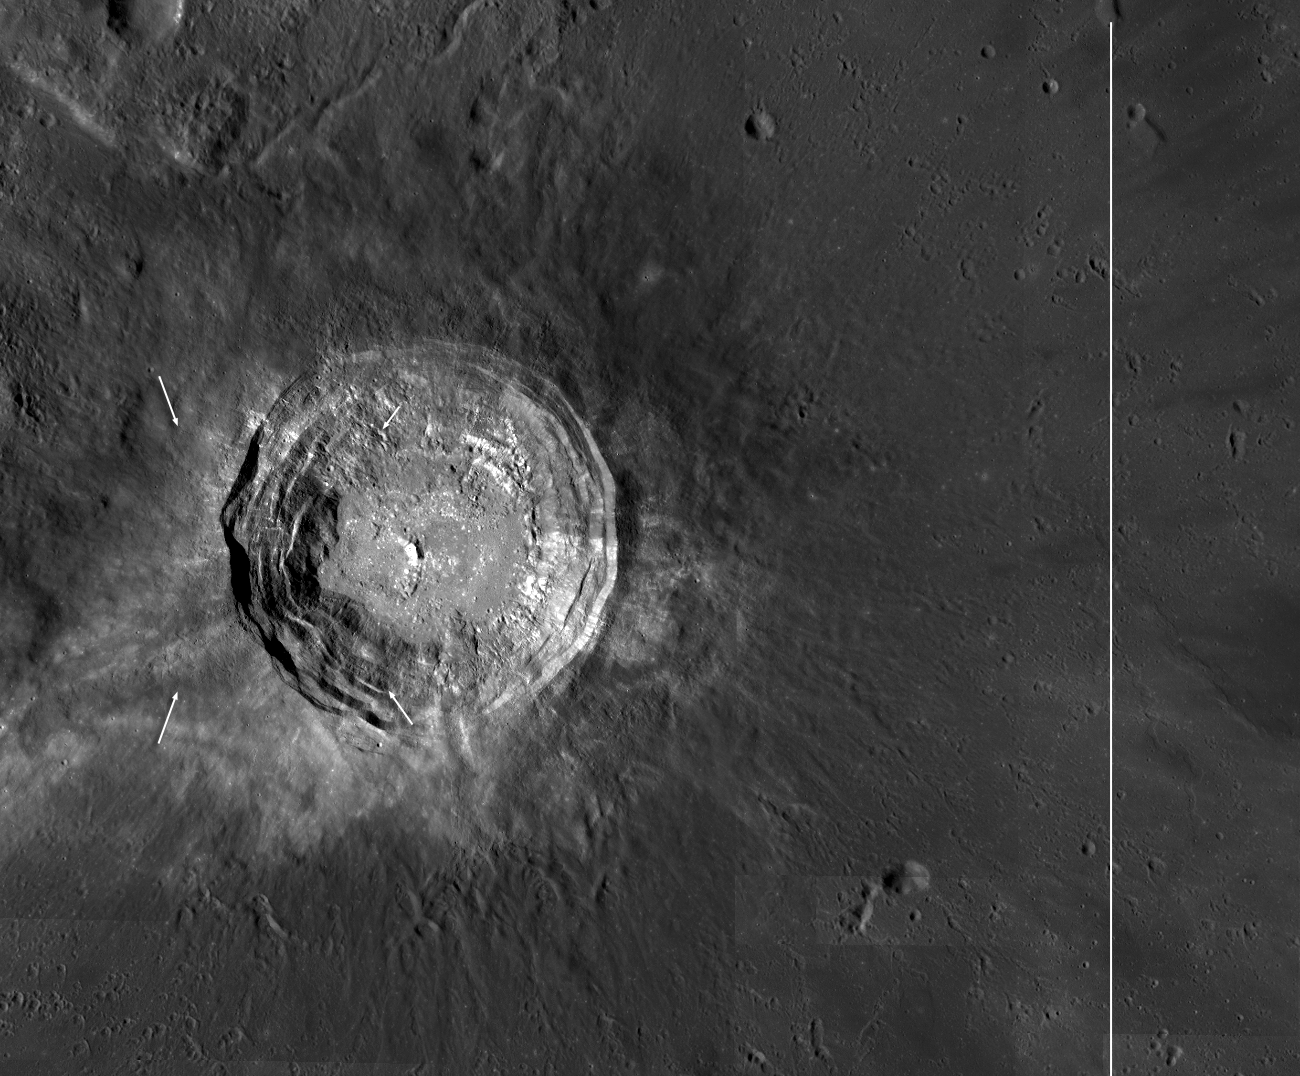 Moon's Aristarchus Crater